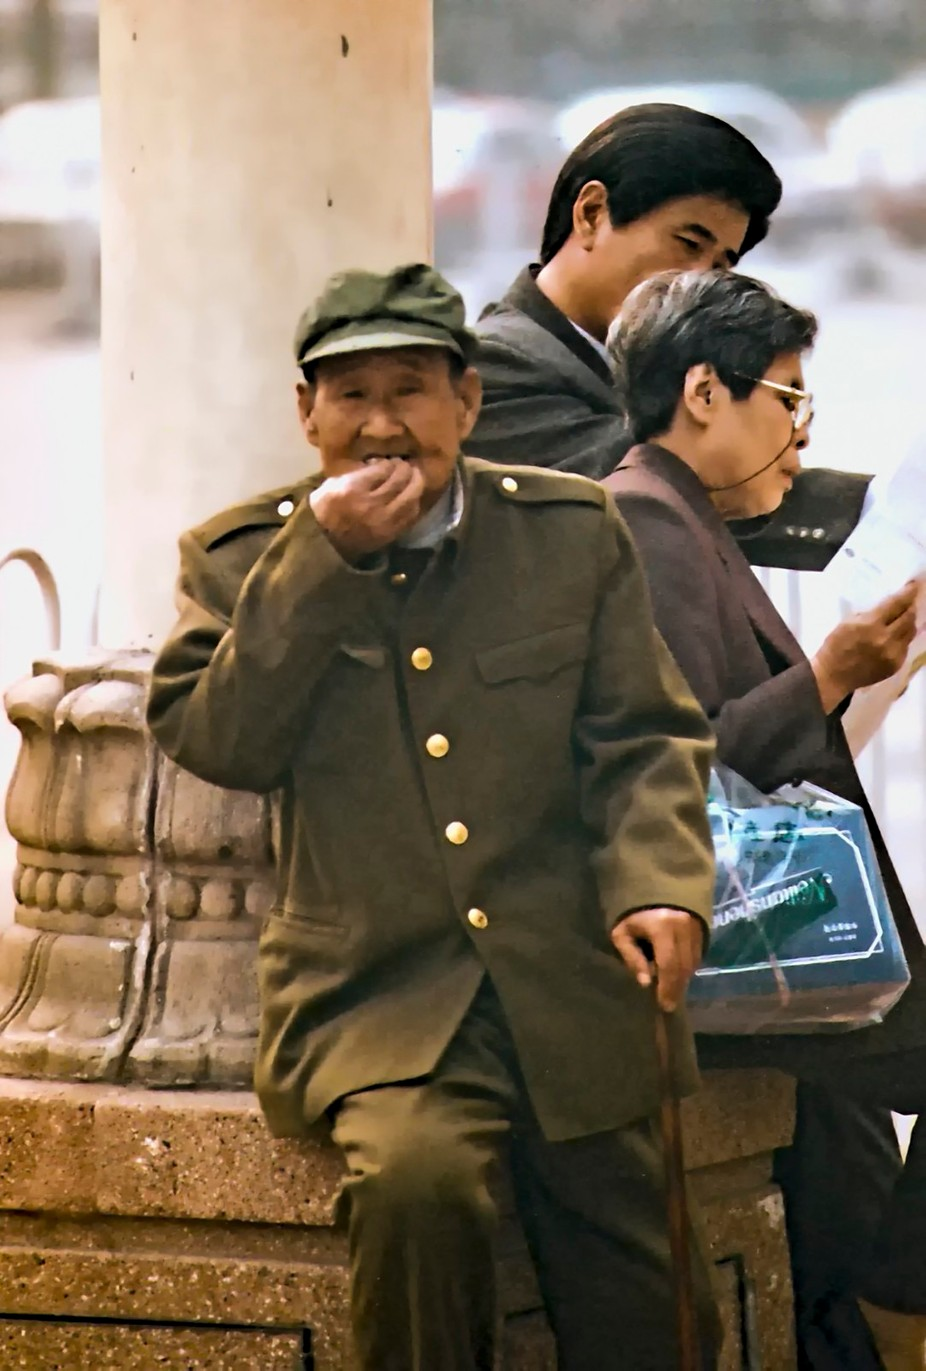 Taken in Bejing in 1999, this elderly man was proudly wearing his old uniform.